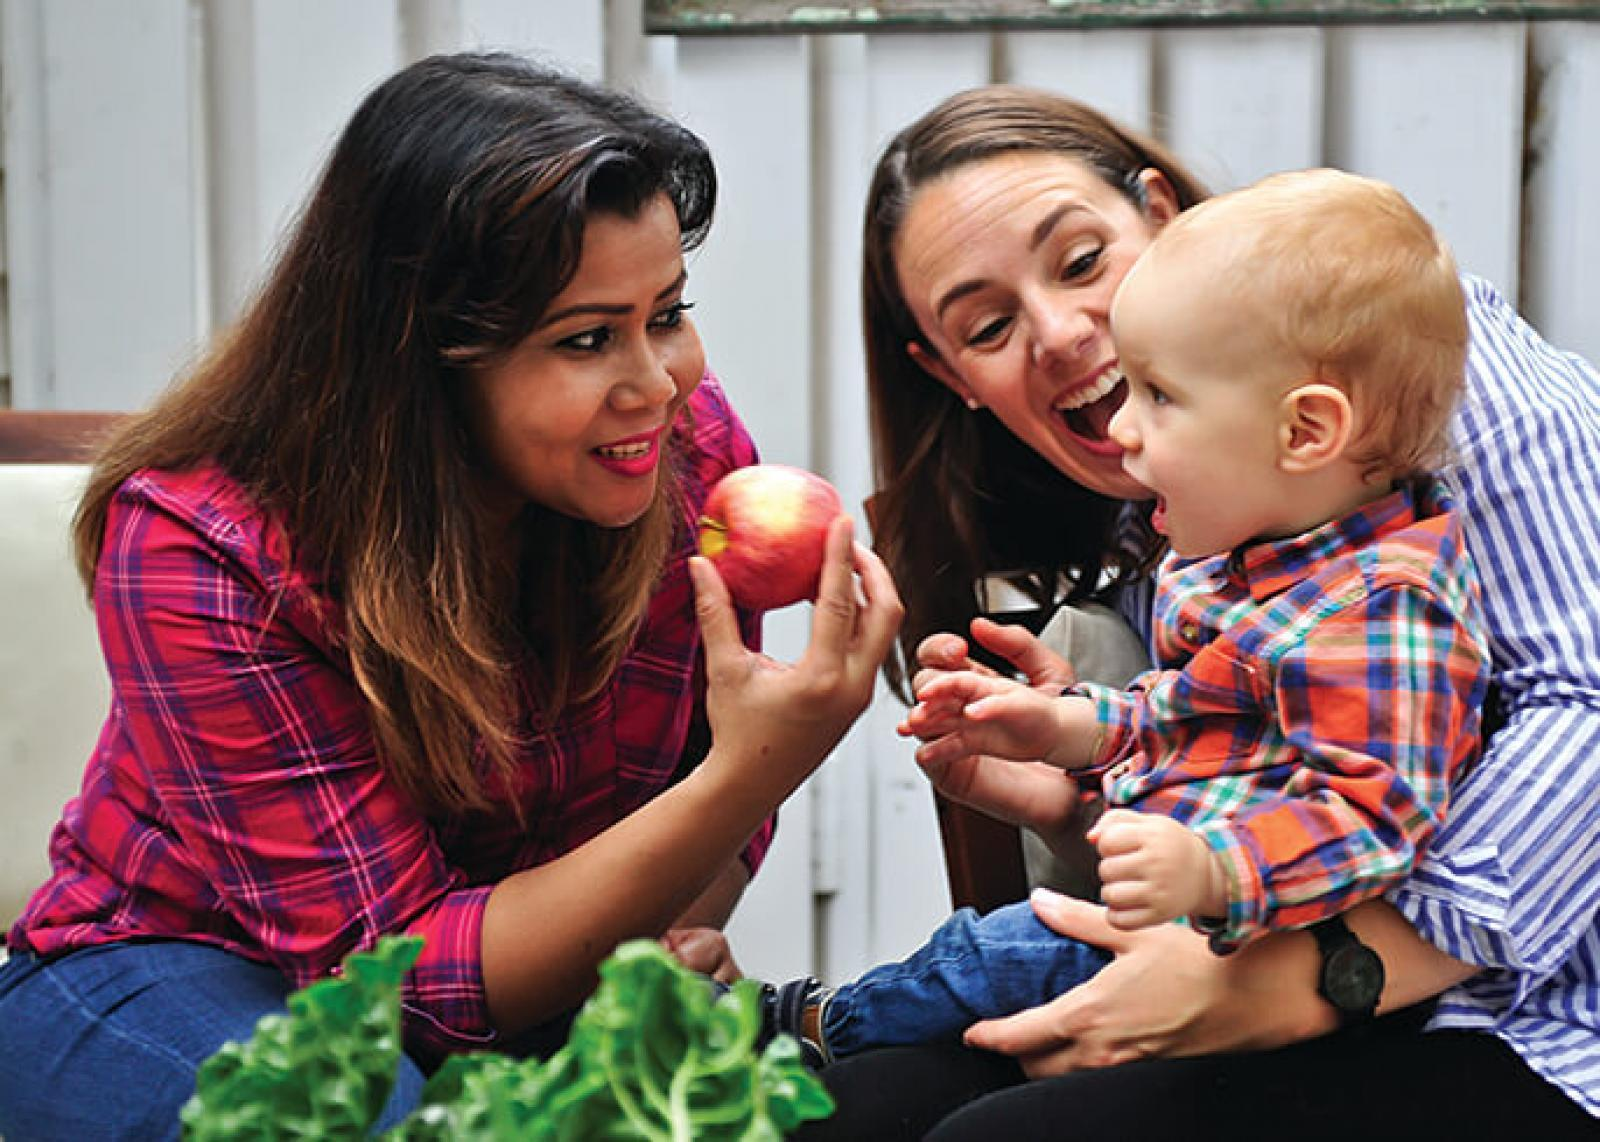 Gardens, food and family